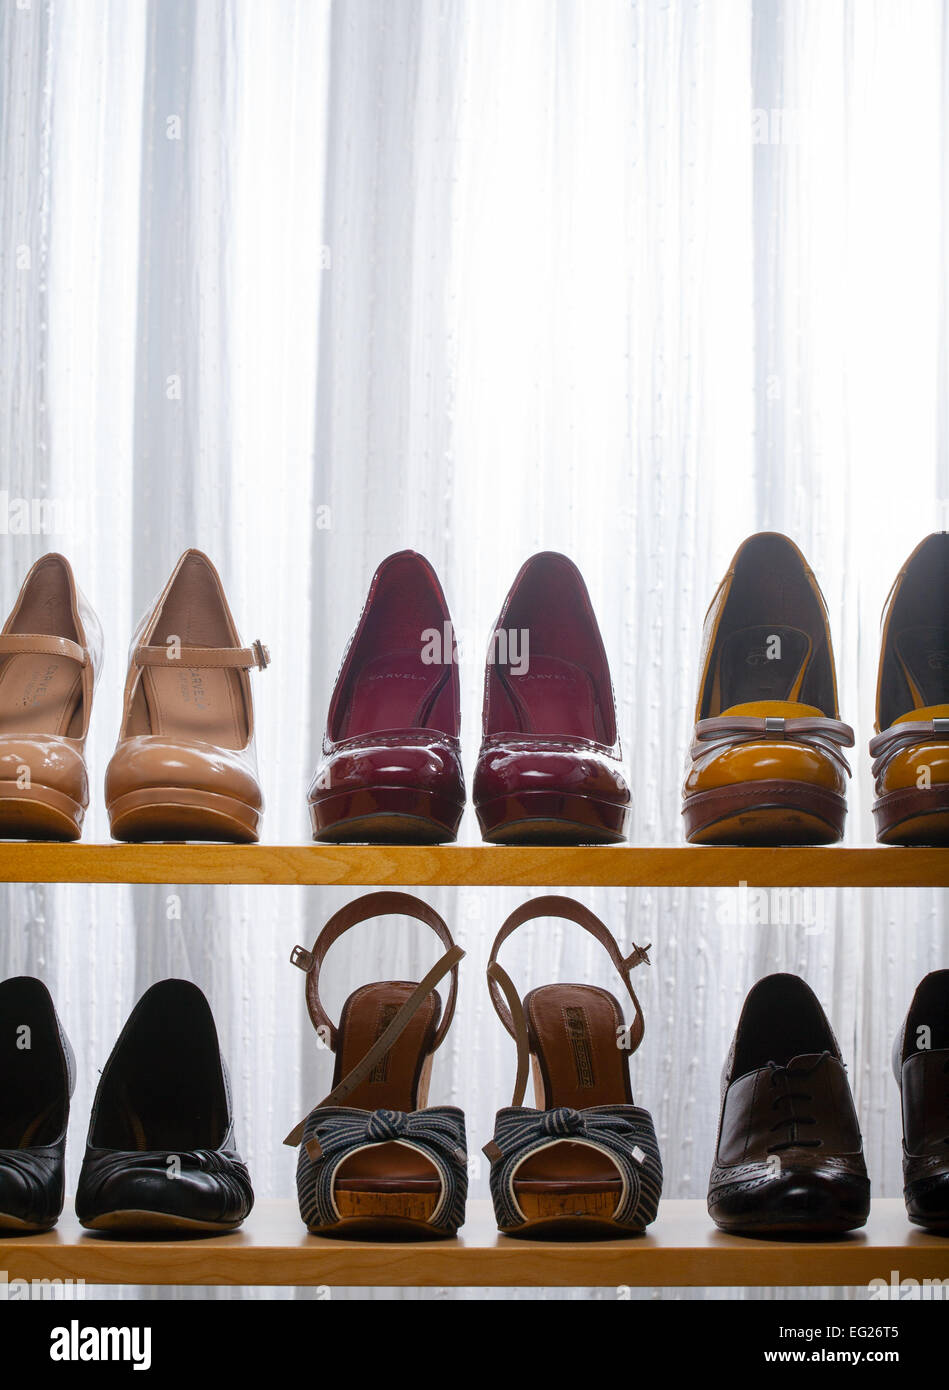 shoes lined up stockfotos shoes lined up bilder alamy. Black Bedroom Furniture Sets. Home Design Ideas